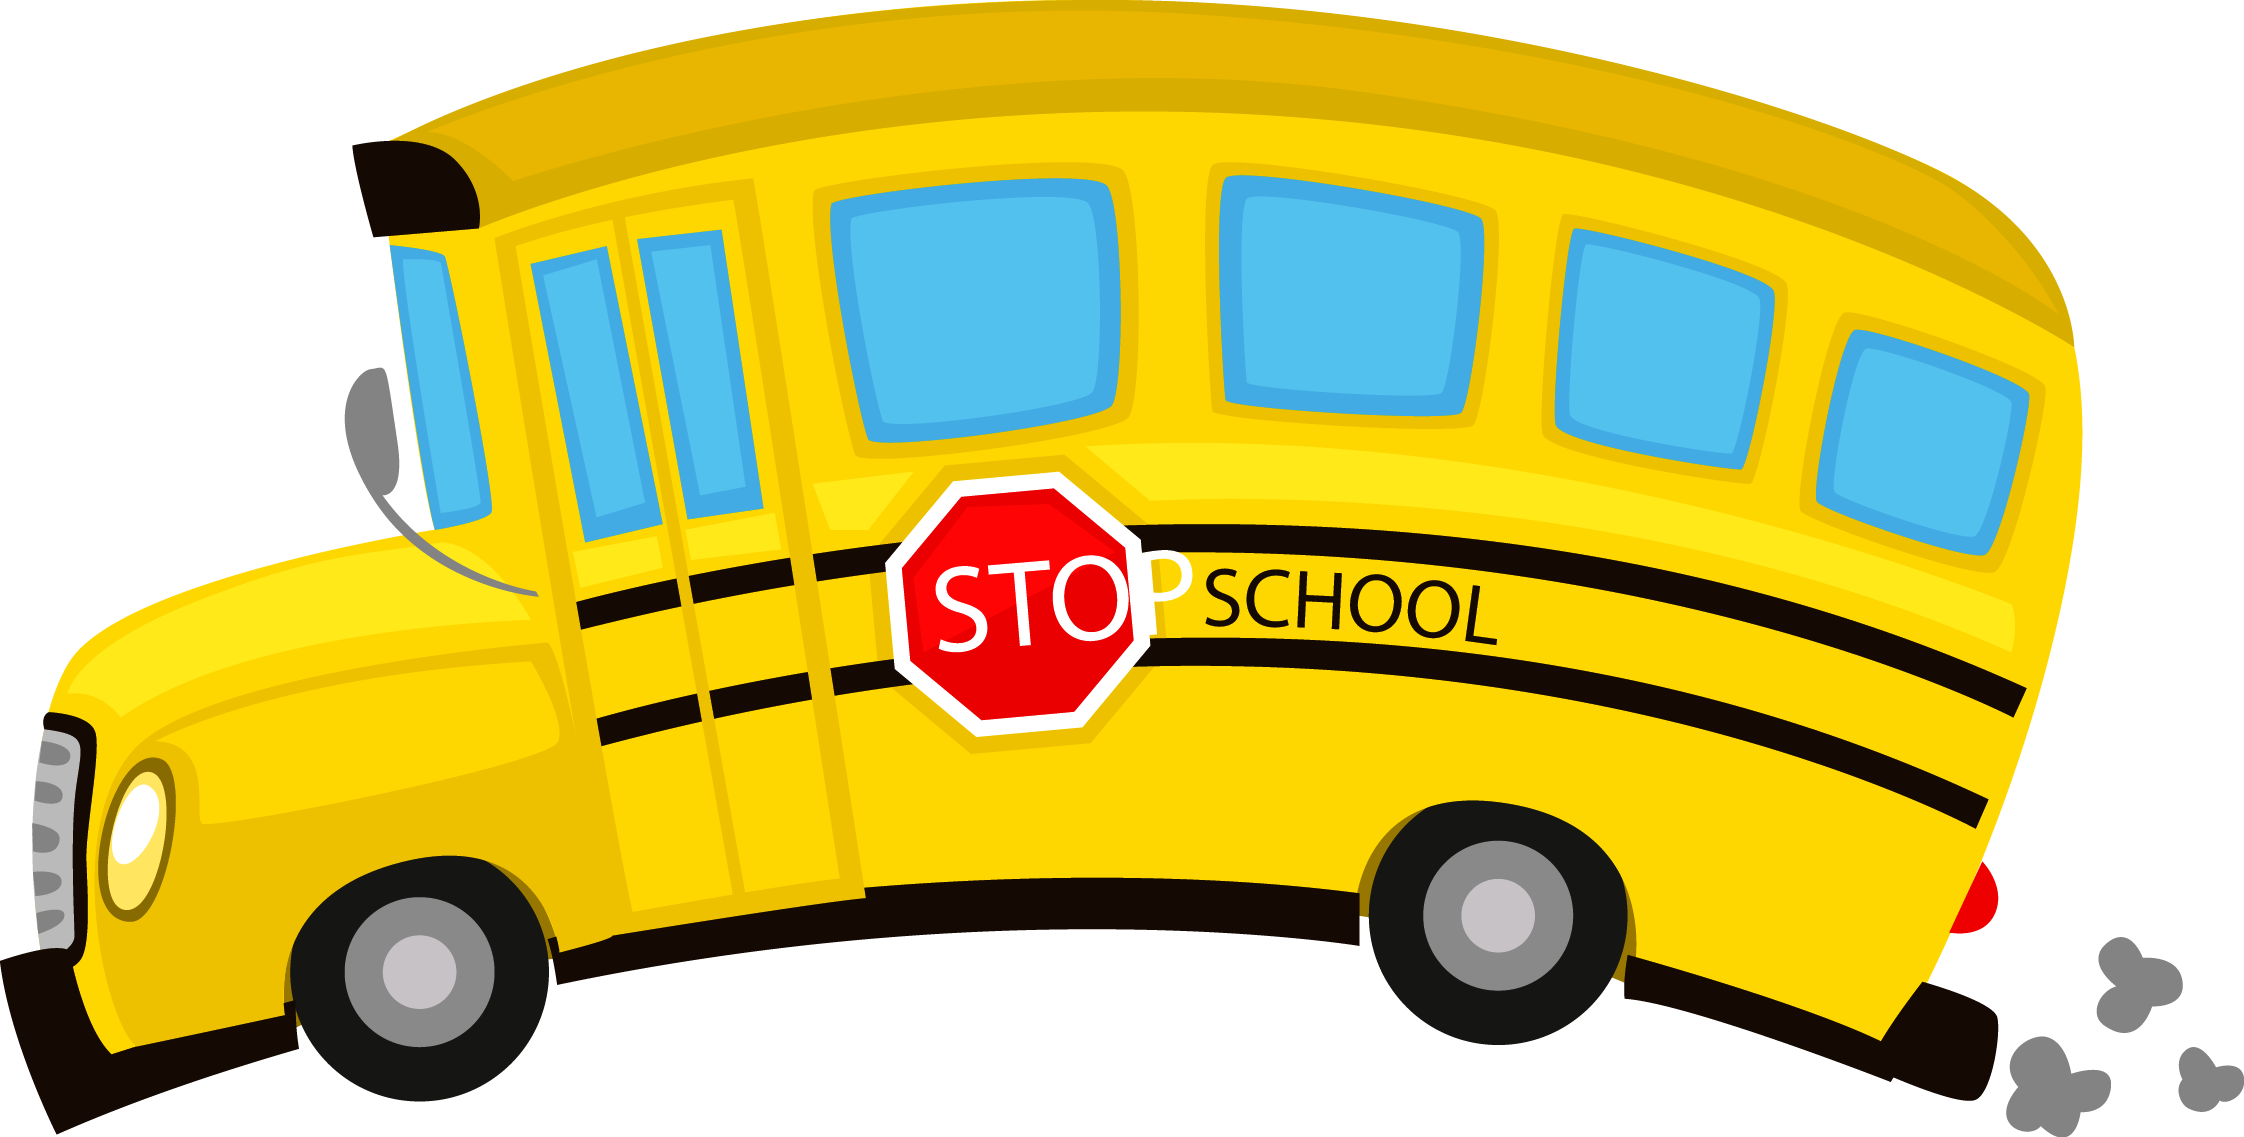 School bus clipart for kids graphic black and white download School Bus Drawing Pictures at GetDrawings.com | Free for personal ... graphic black and white download